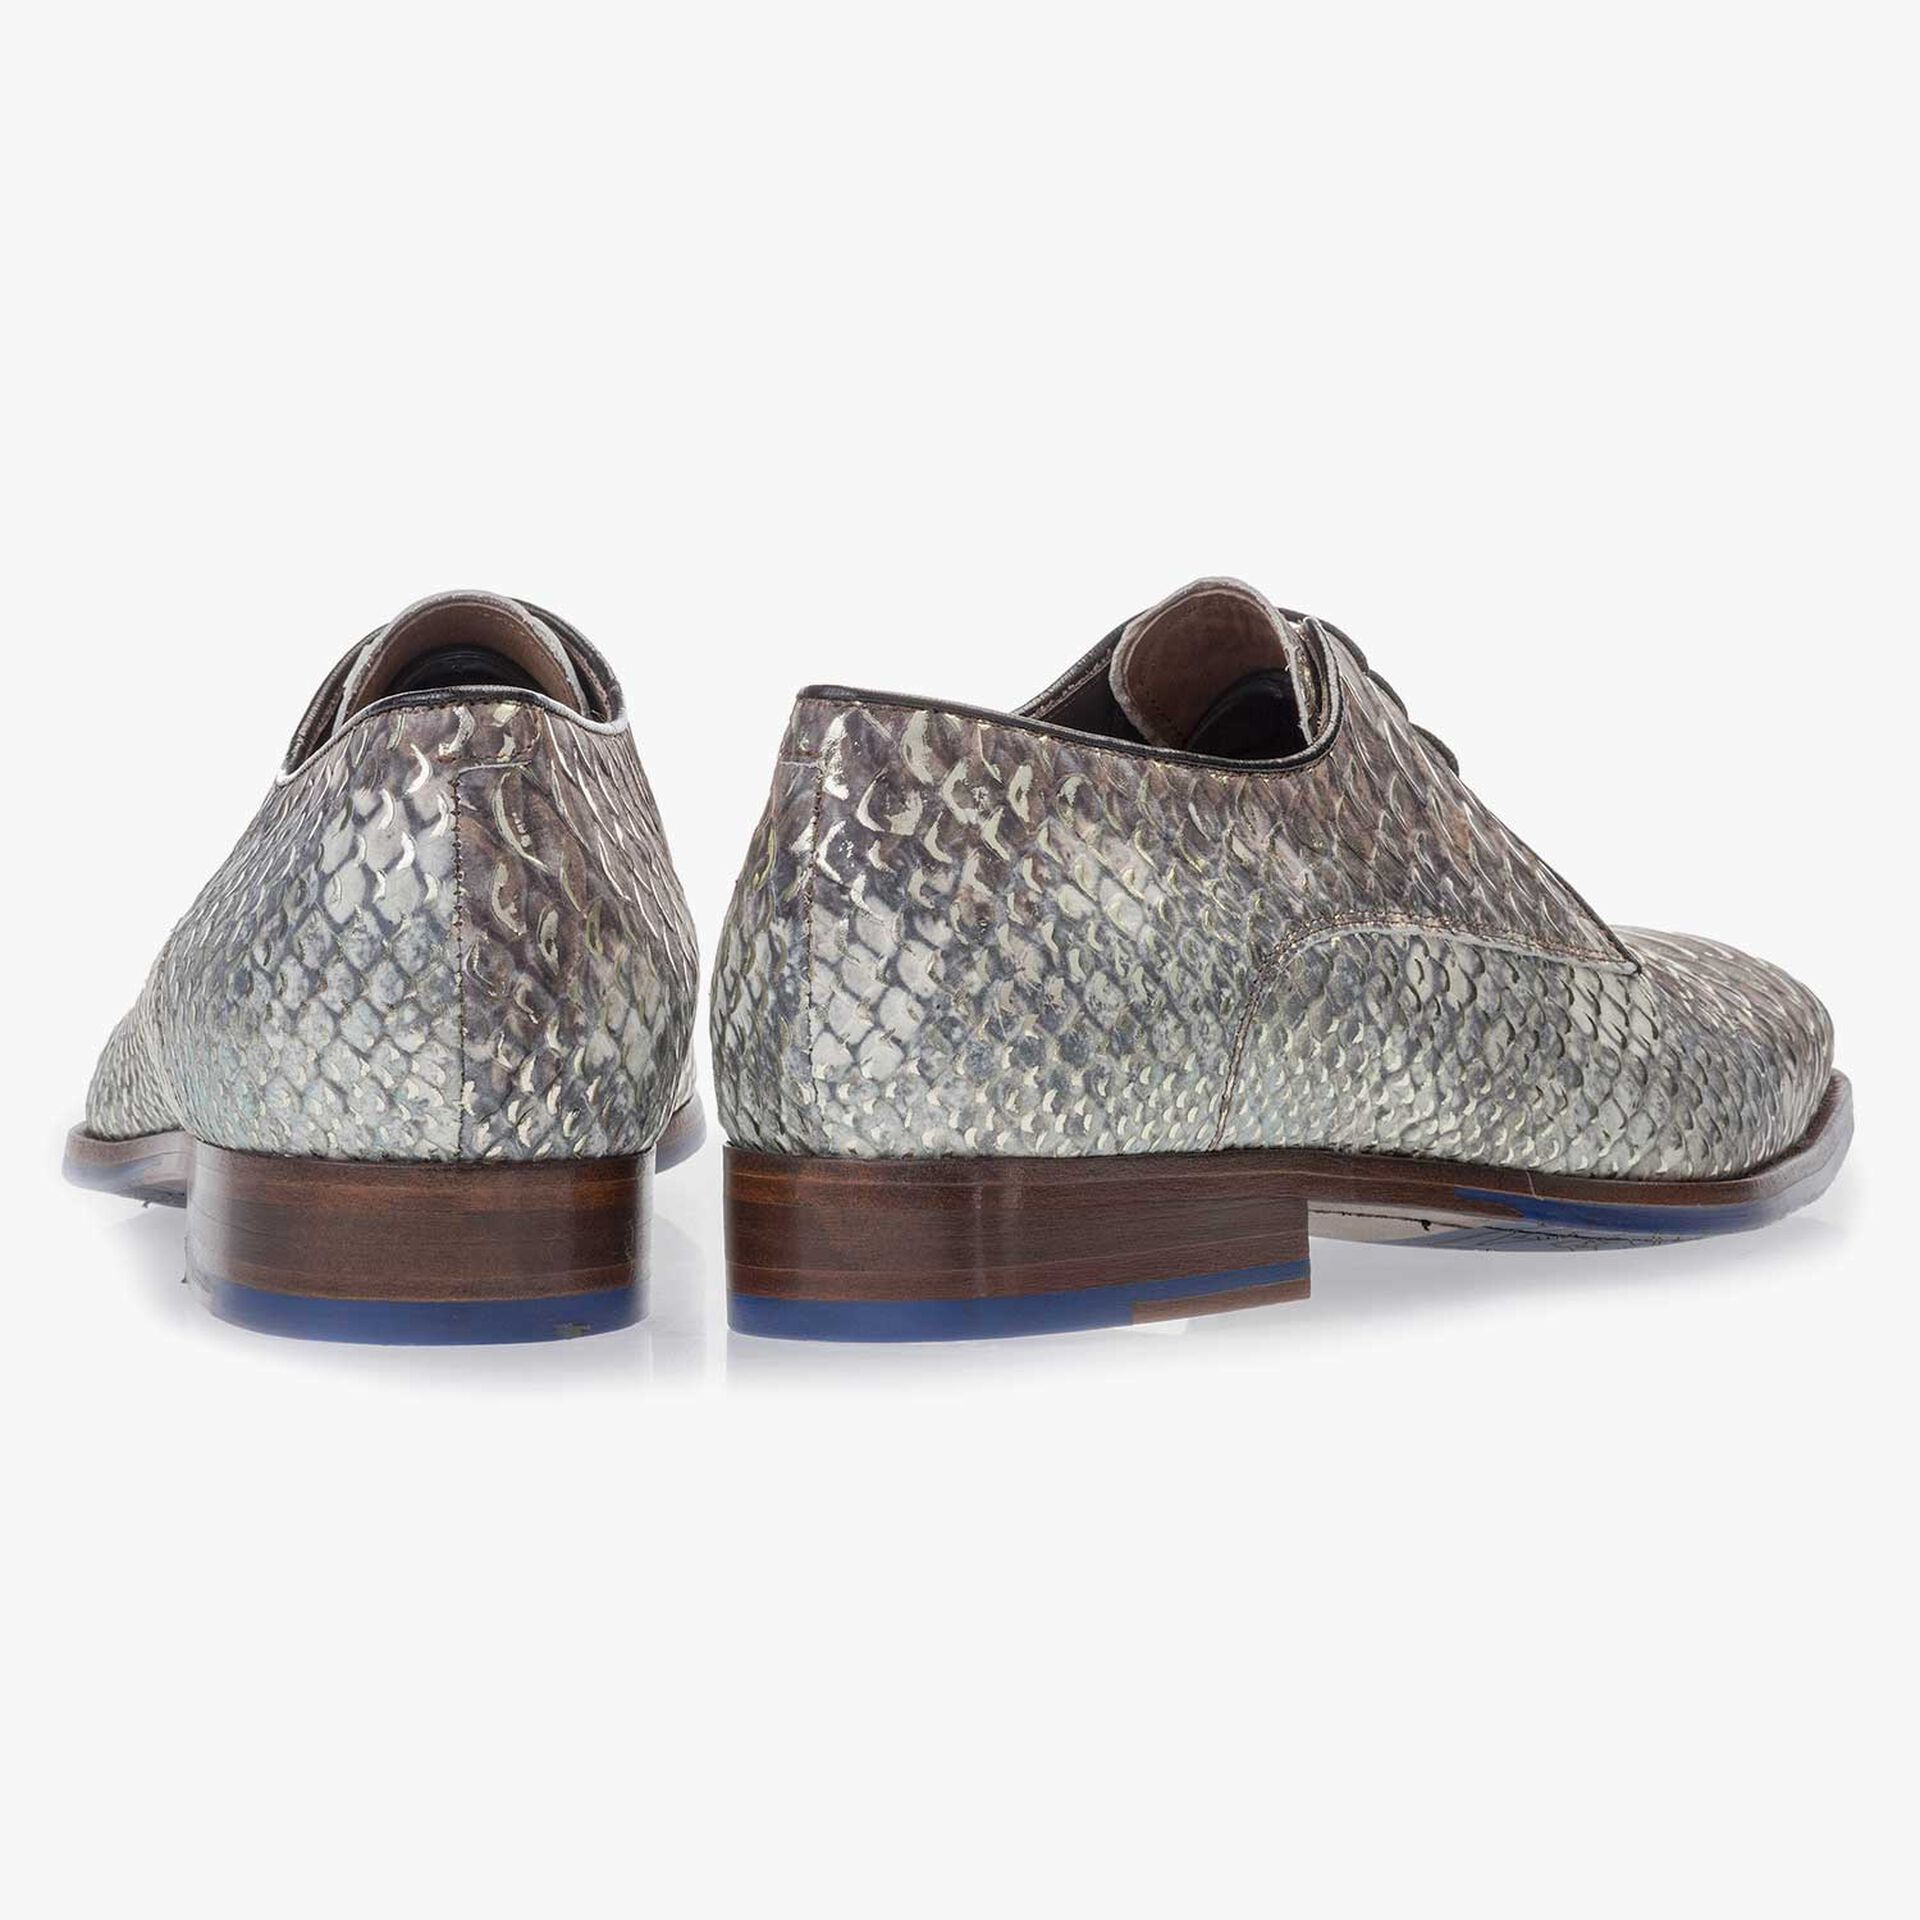 Premium taupe-coloured leather lace shoe with a snake print